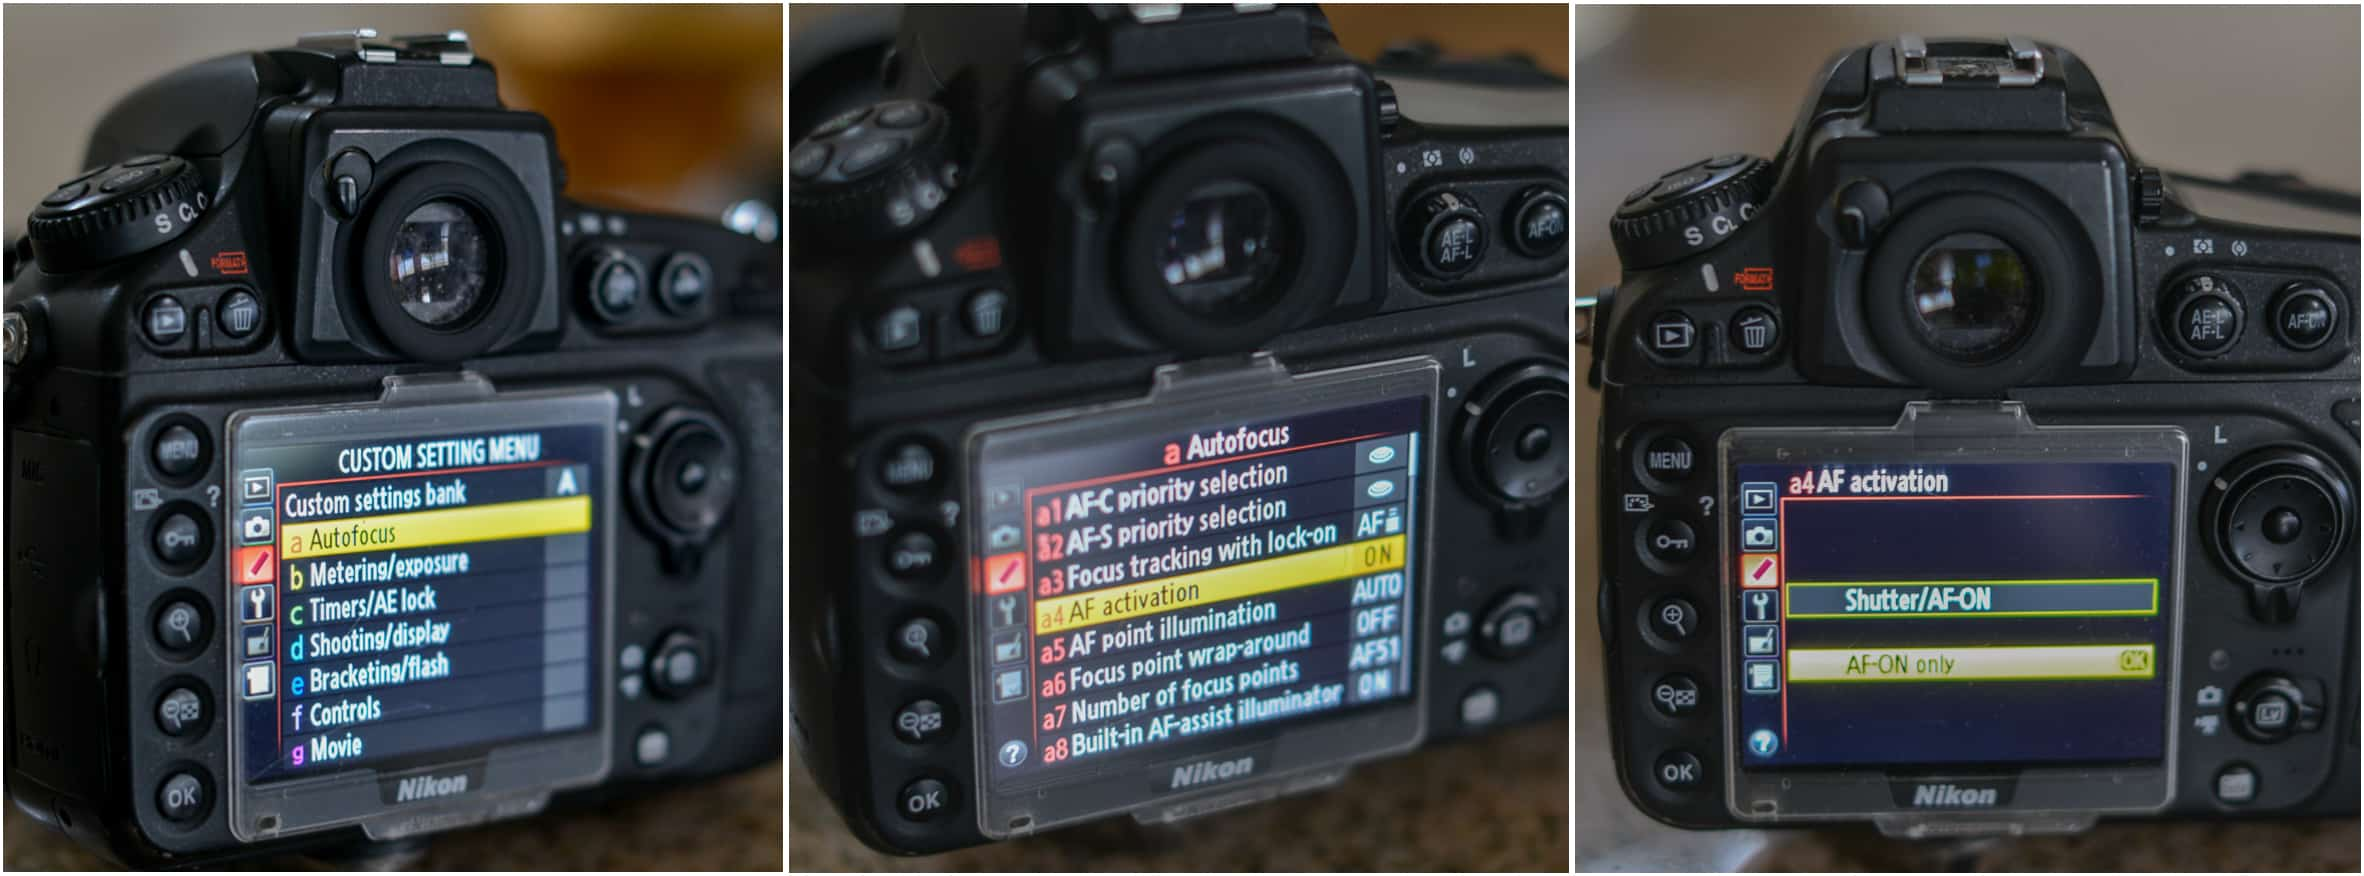 How to Set Back Button Focus Nikon